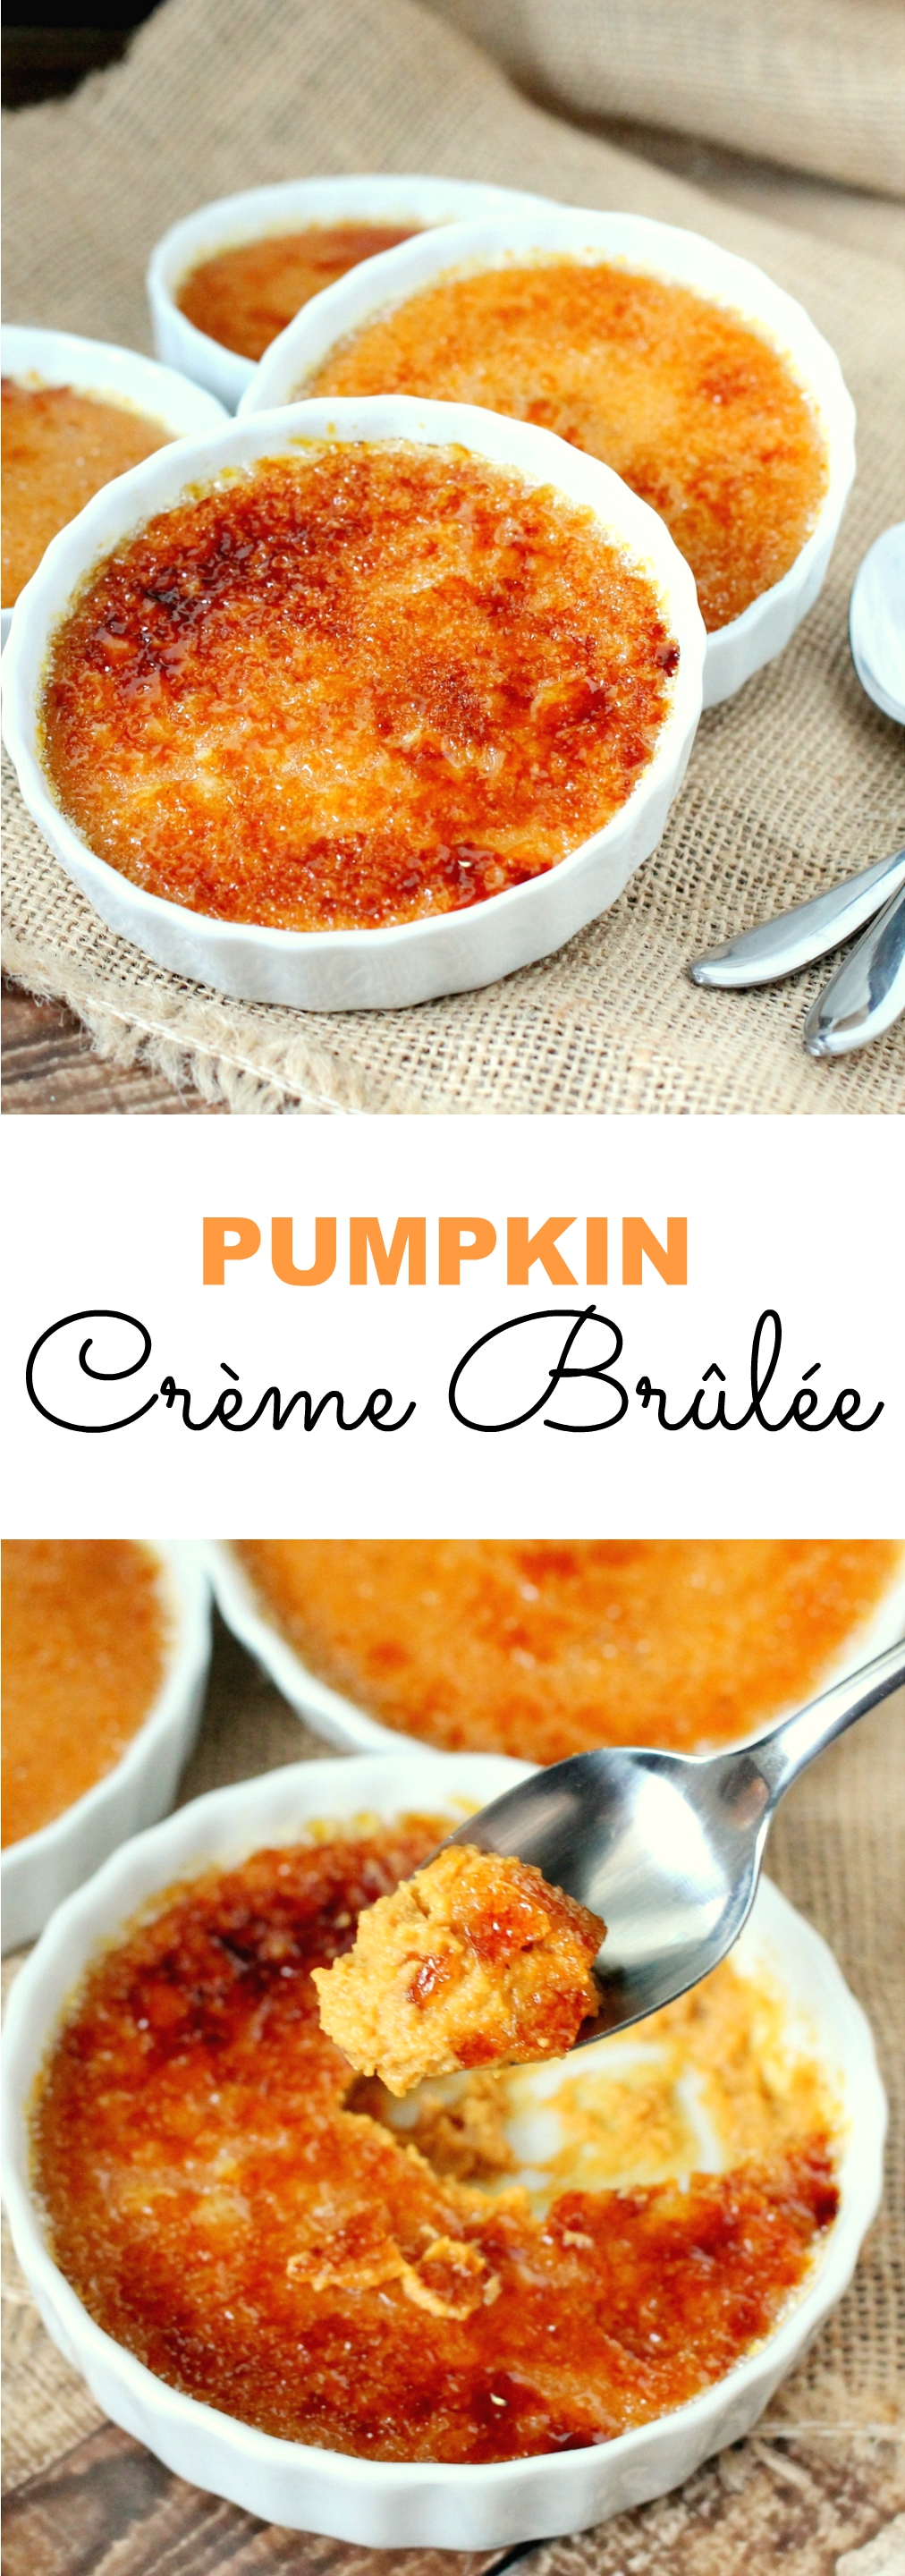 Pumpkin Creme brulee simple recipe